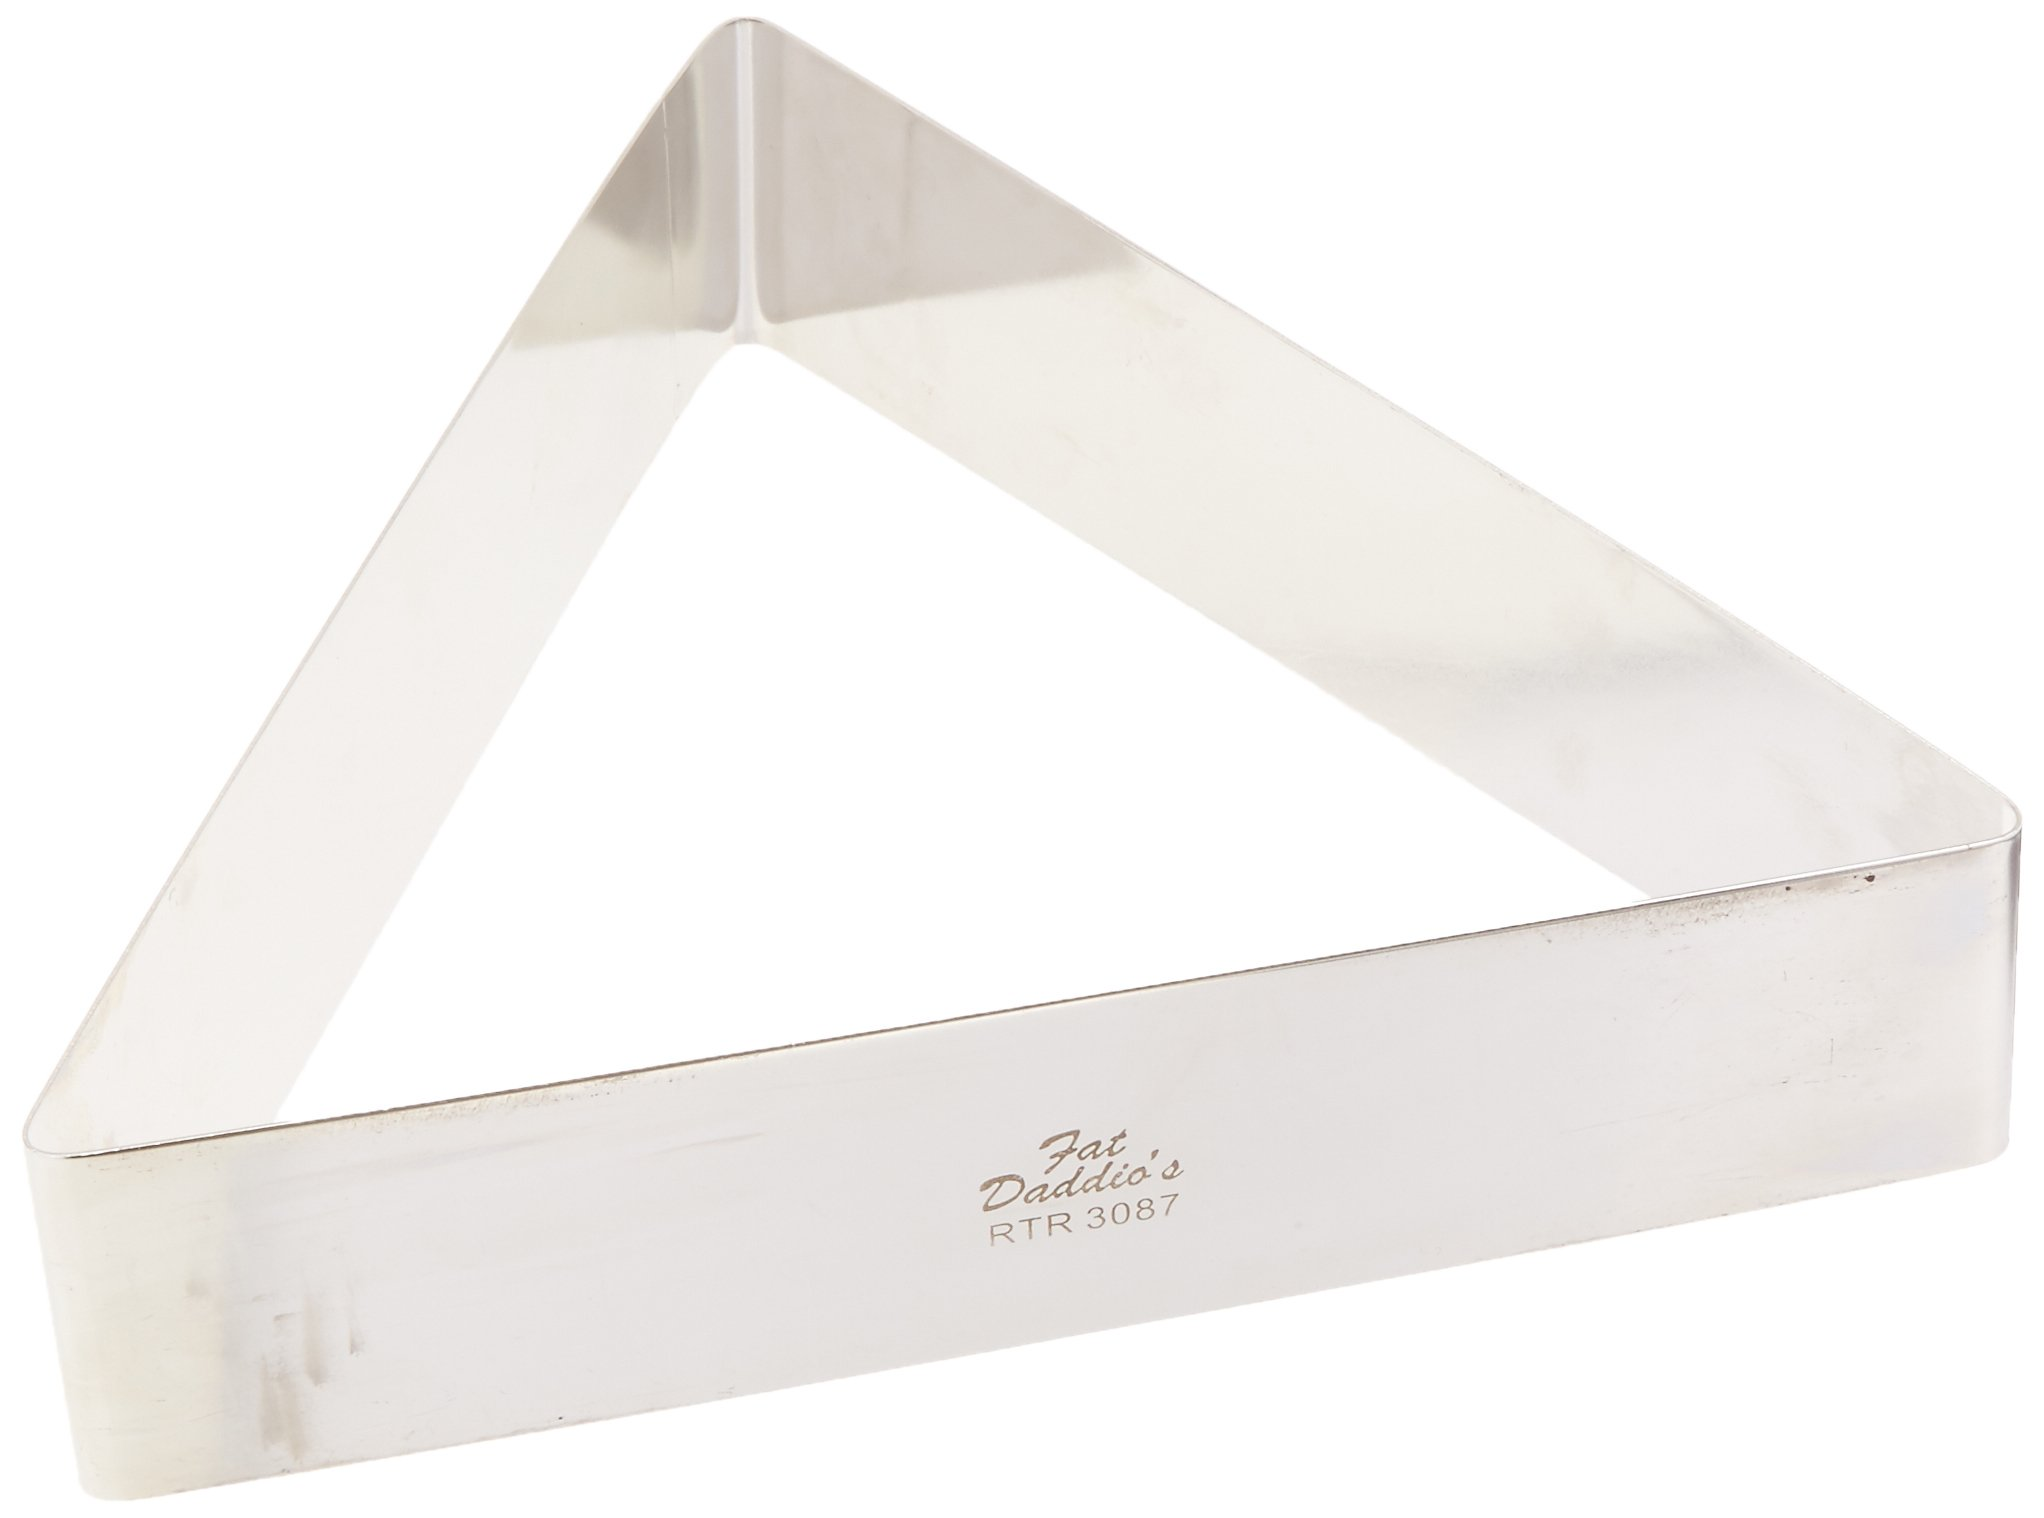 Fat Daddio's Stainless Steel Triangle Cake and Pastry Ring, 8.75 Inch x 2 Inch